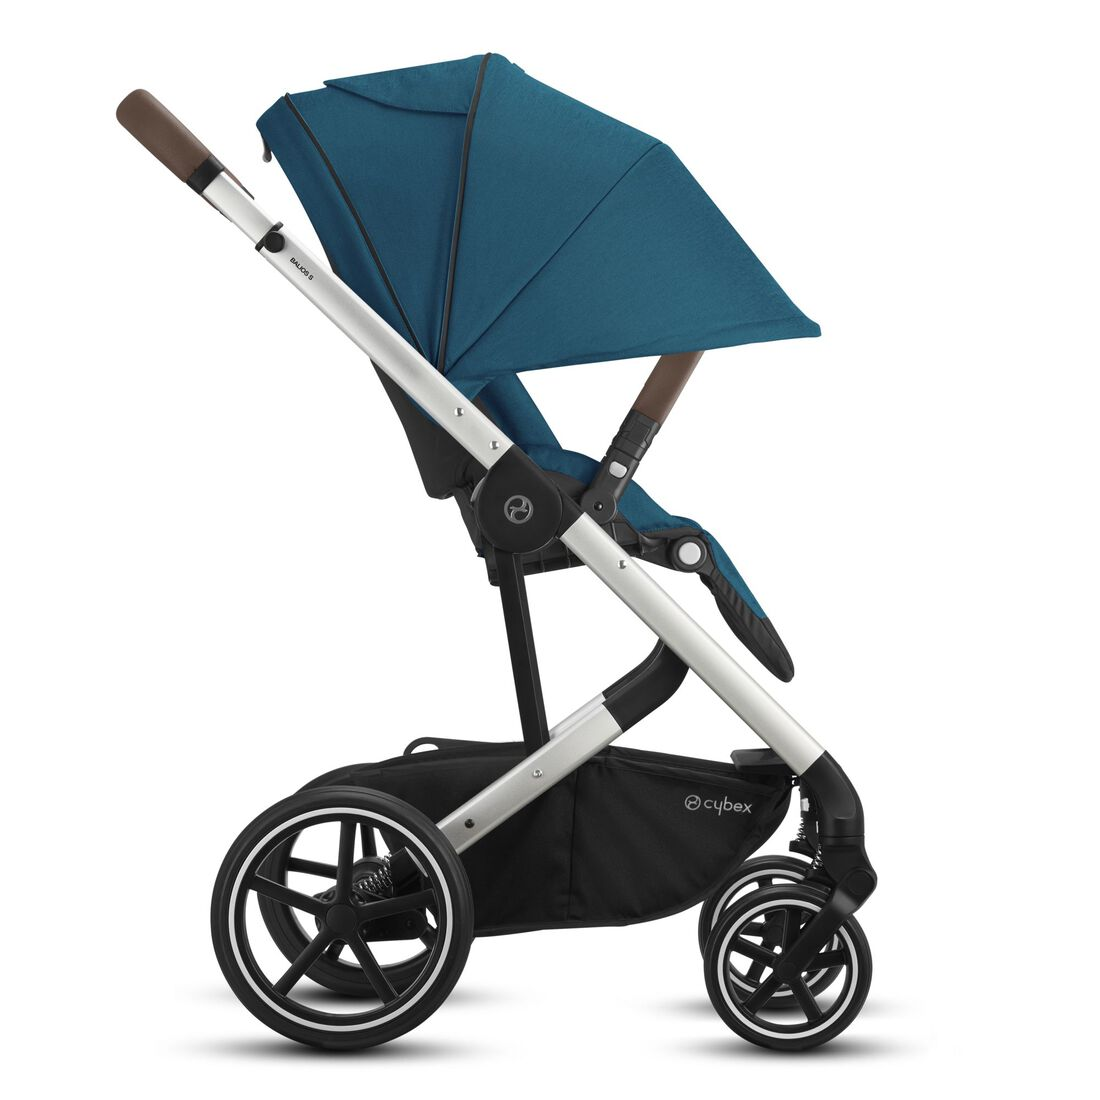 CYBEX Balios S Lux - River Blue (Silver Frame) in River Blue (Silver Frame) large image number 5